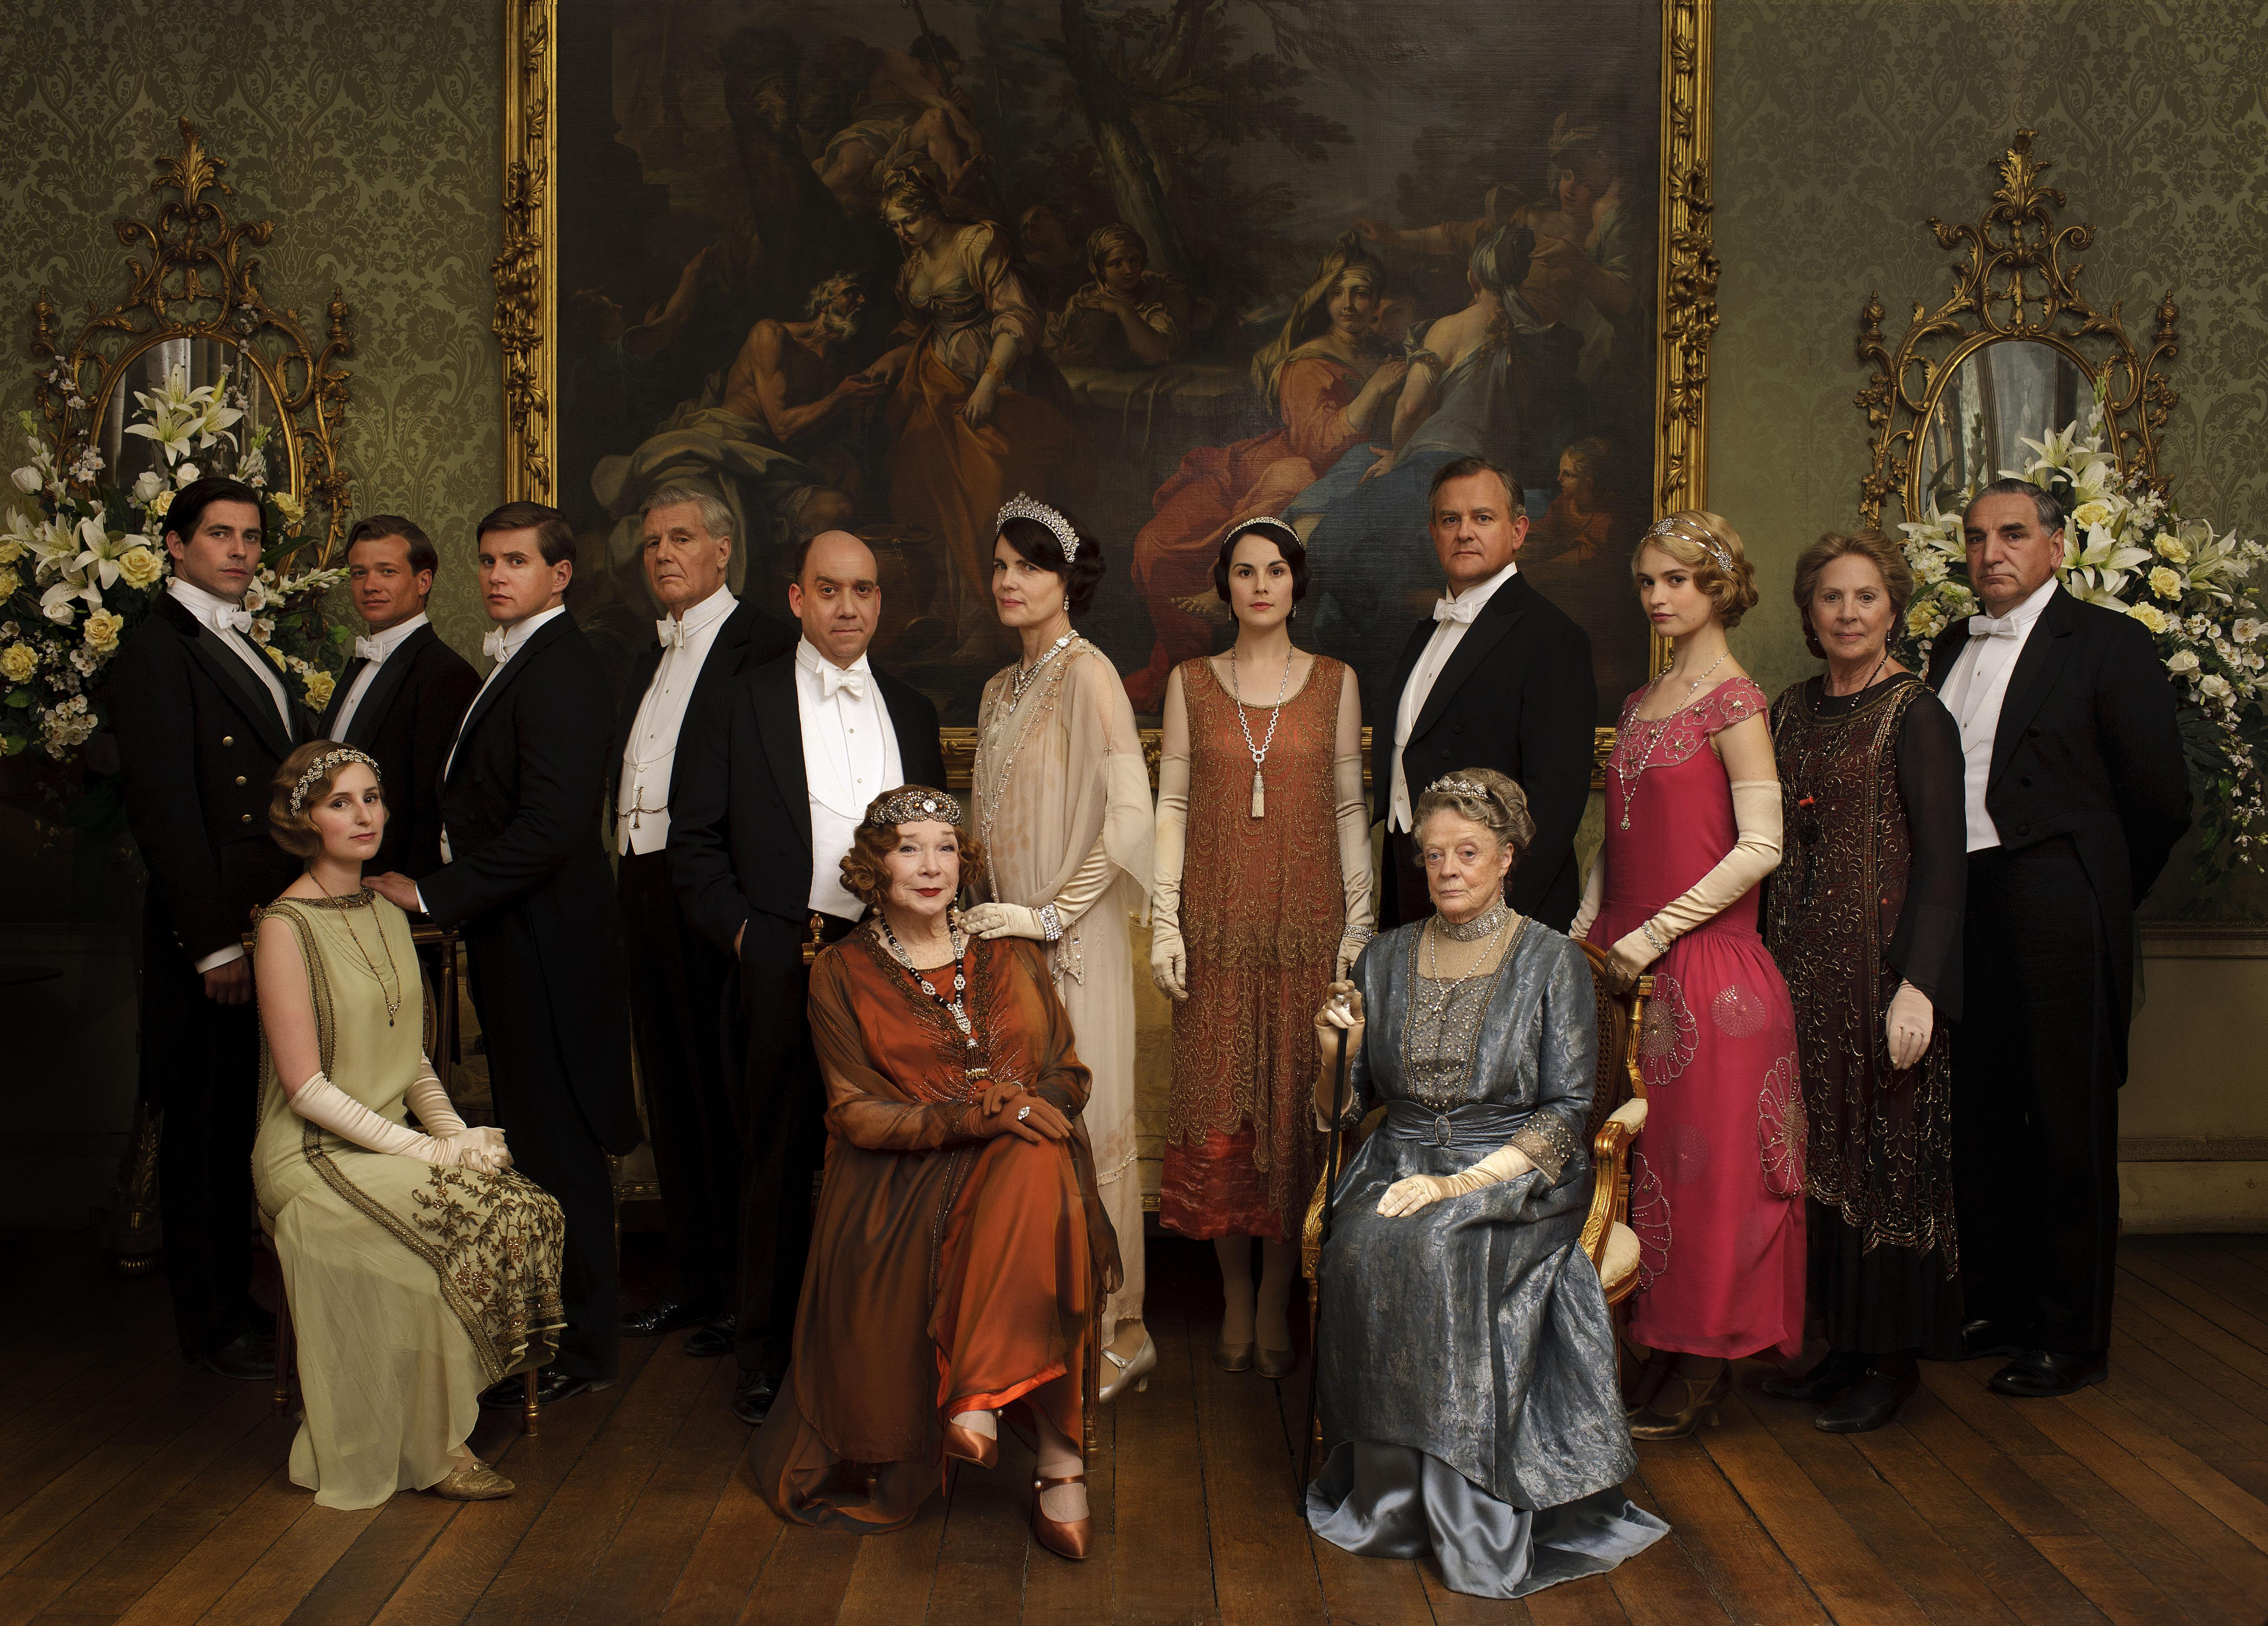 Downton abbey gift ideas